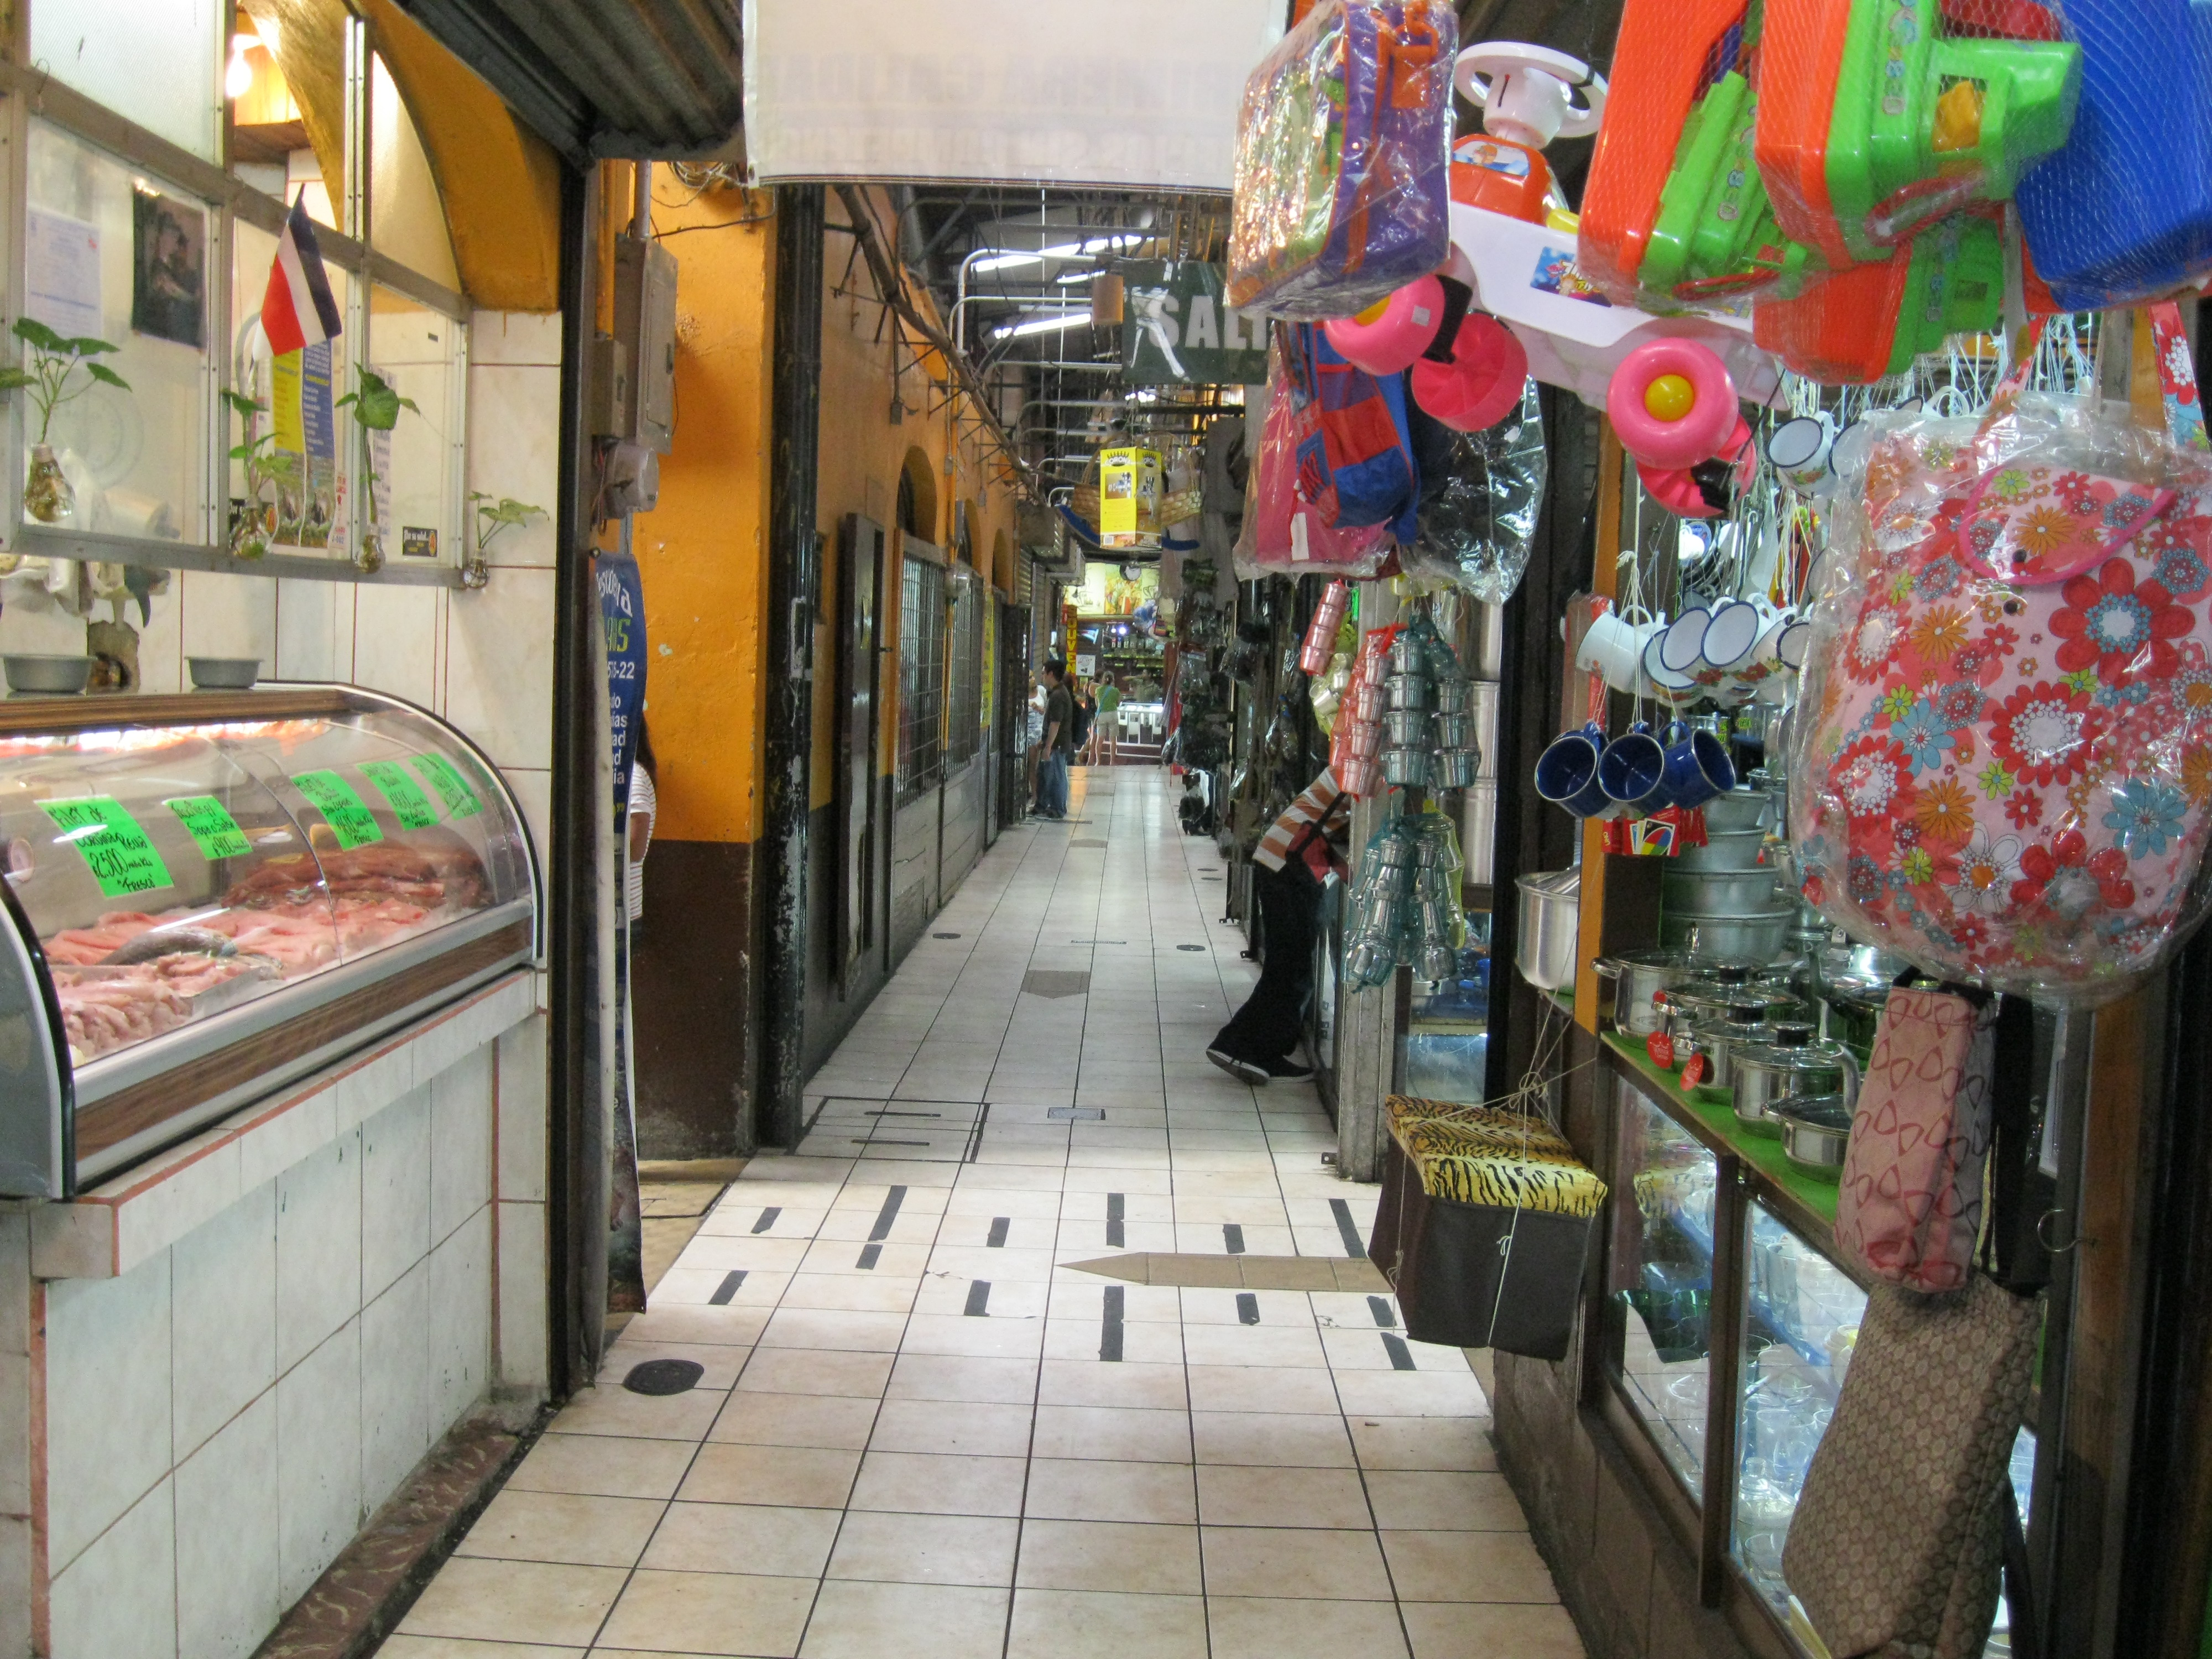 On days when the feria isn't going on, Costa Ricans head to the Central Market, an indoor market with produce, household goods, and more.